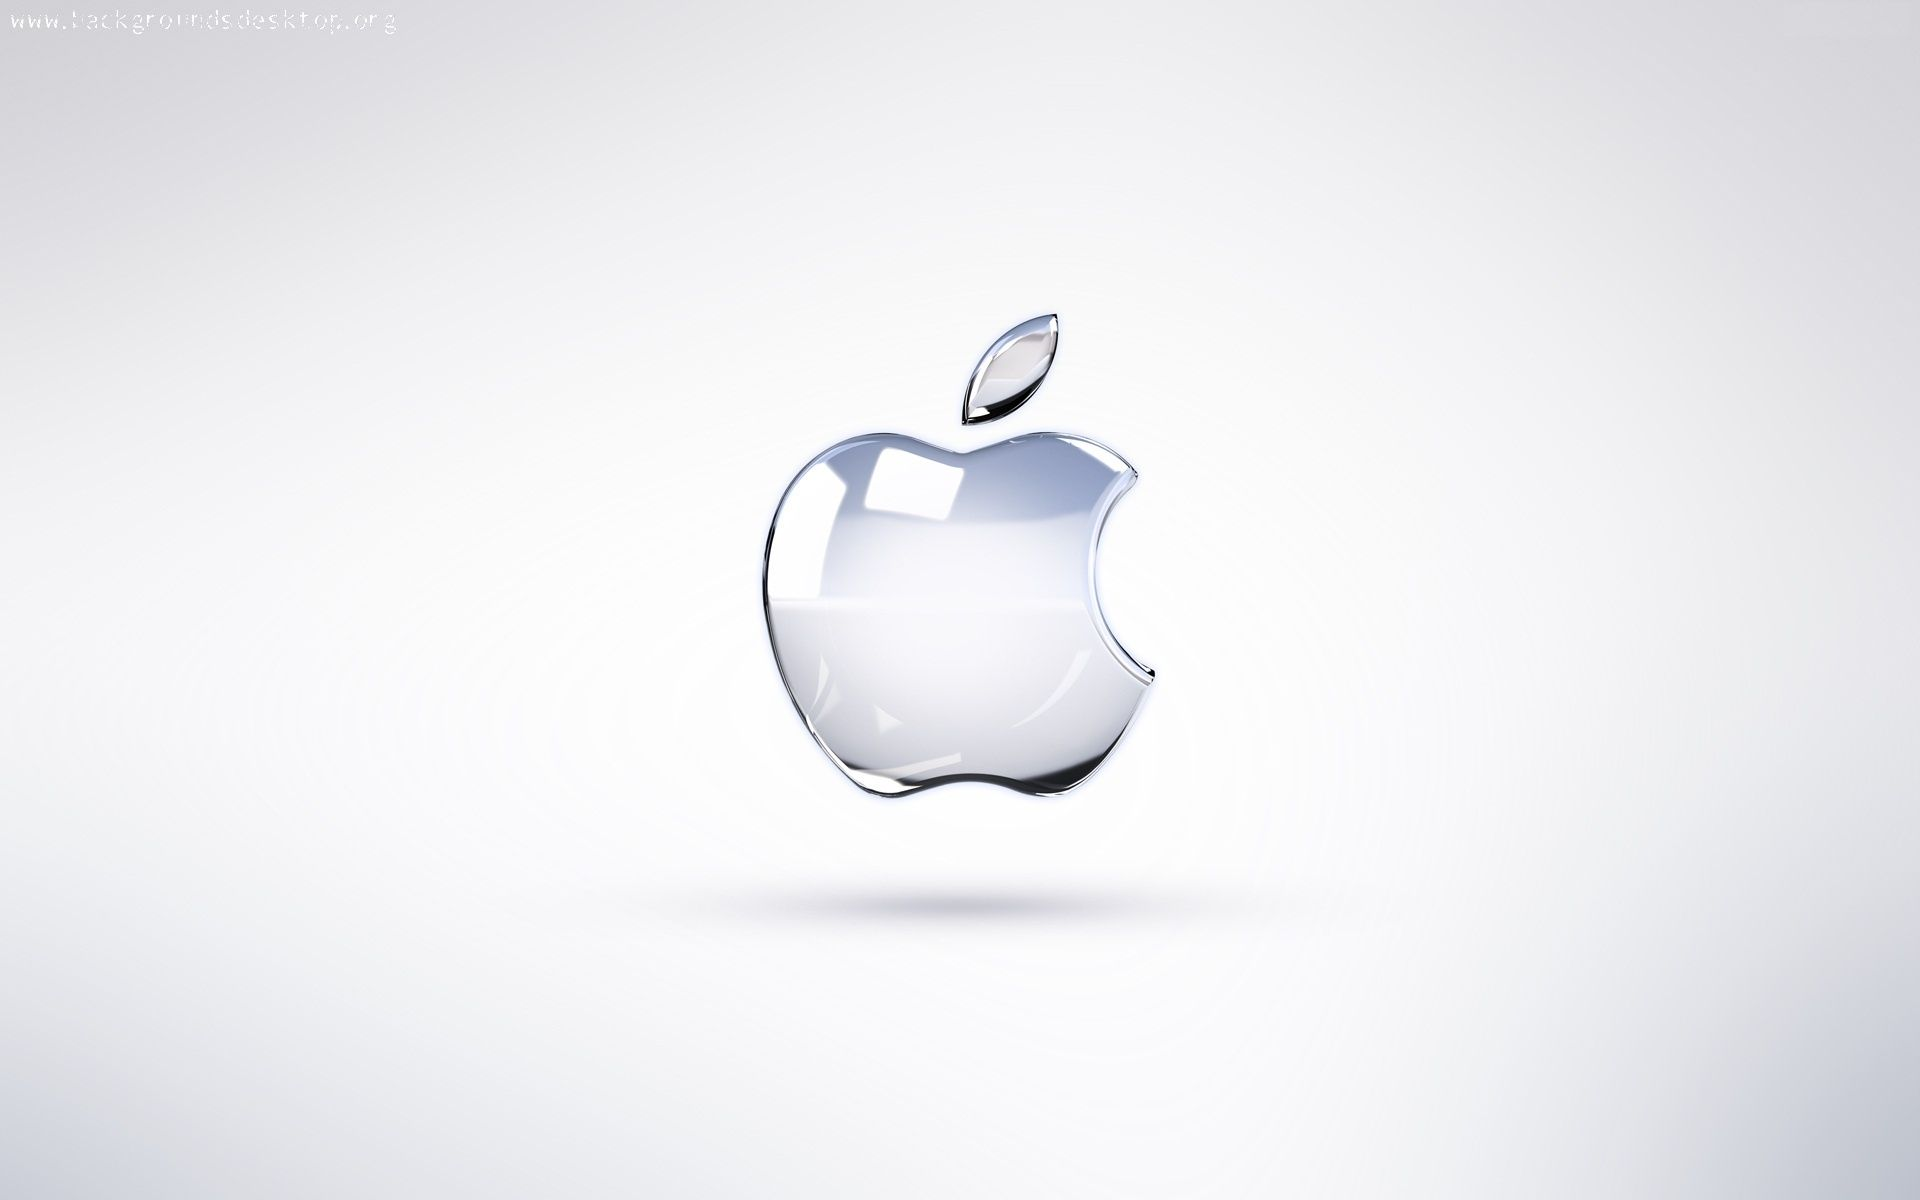 apple backgrounds desktop background wallpapers apple pinterest